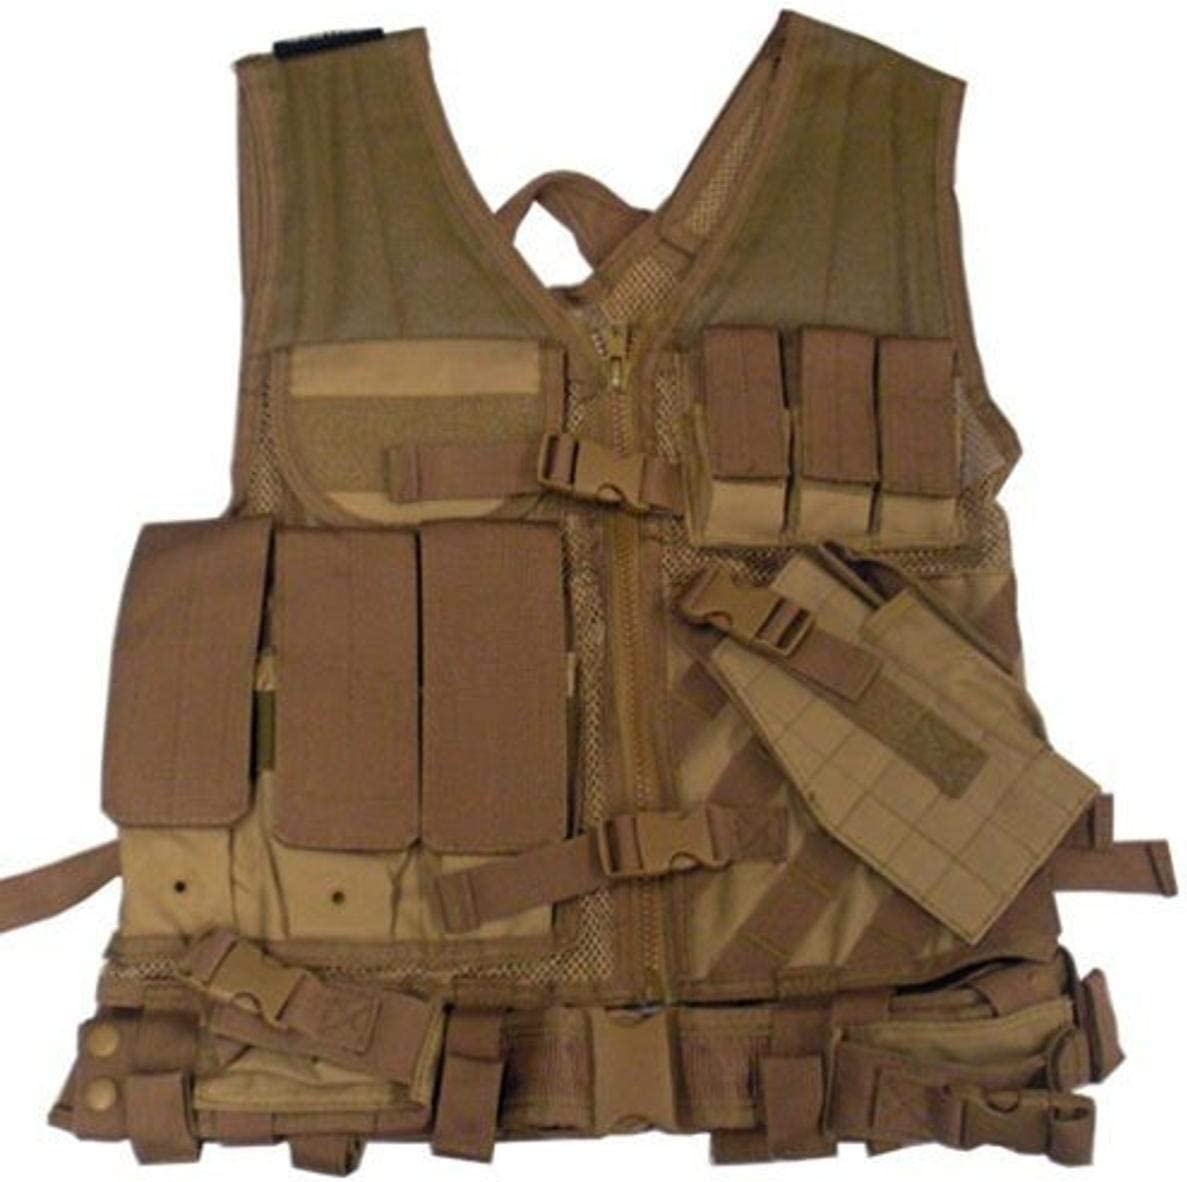 VISM Excellent Free shipping anywhere in the nation by NcStar Tactical Tan XX-Large Vest CTVL2916T